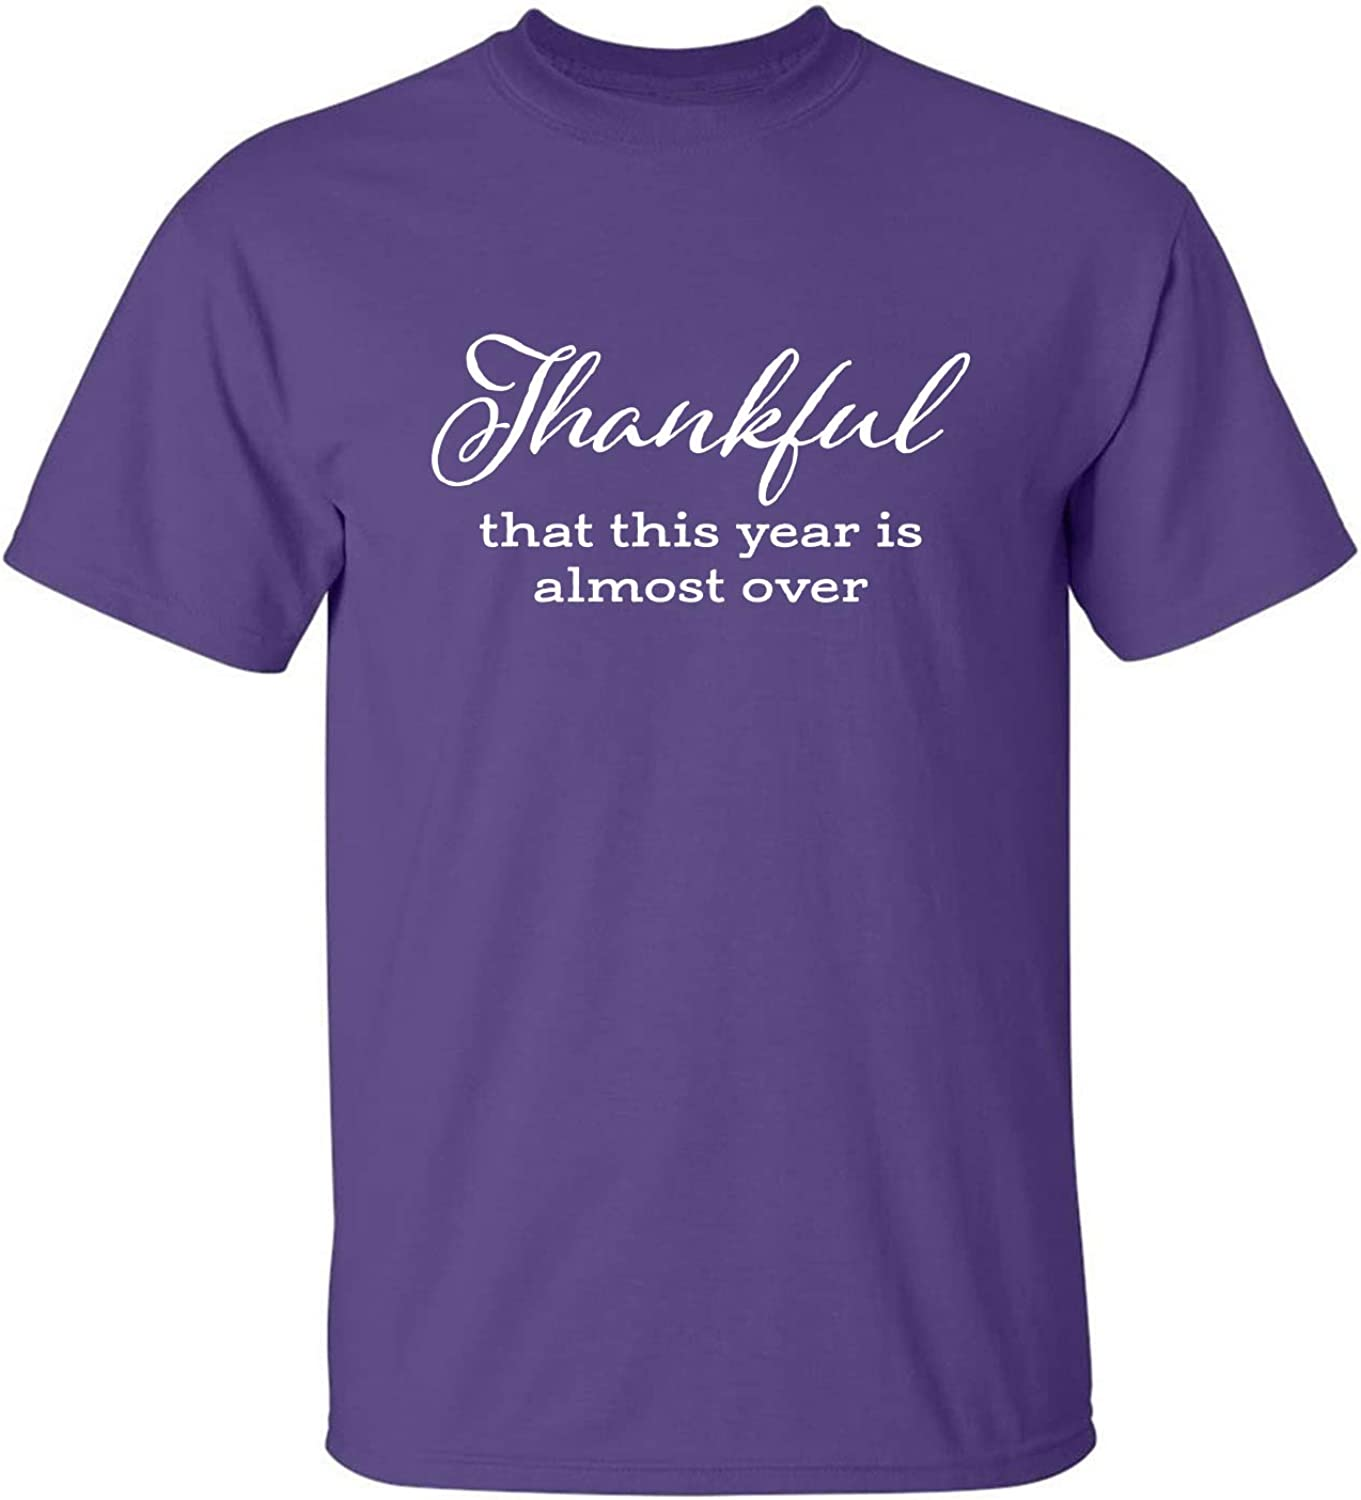 Thankful This Year is Almost Over Adult T-Shirt in Purple - XXXX-Large